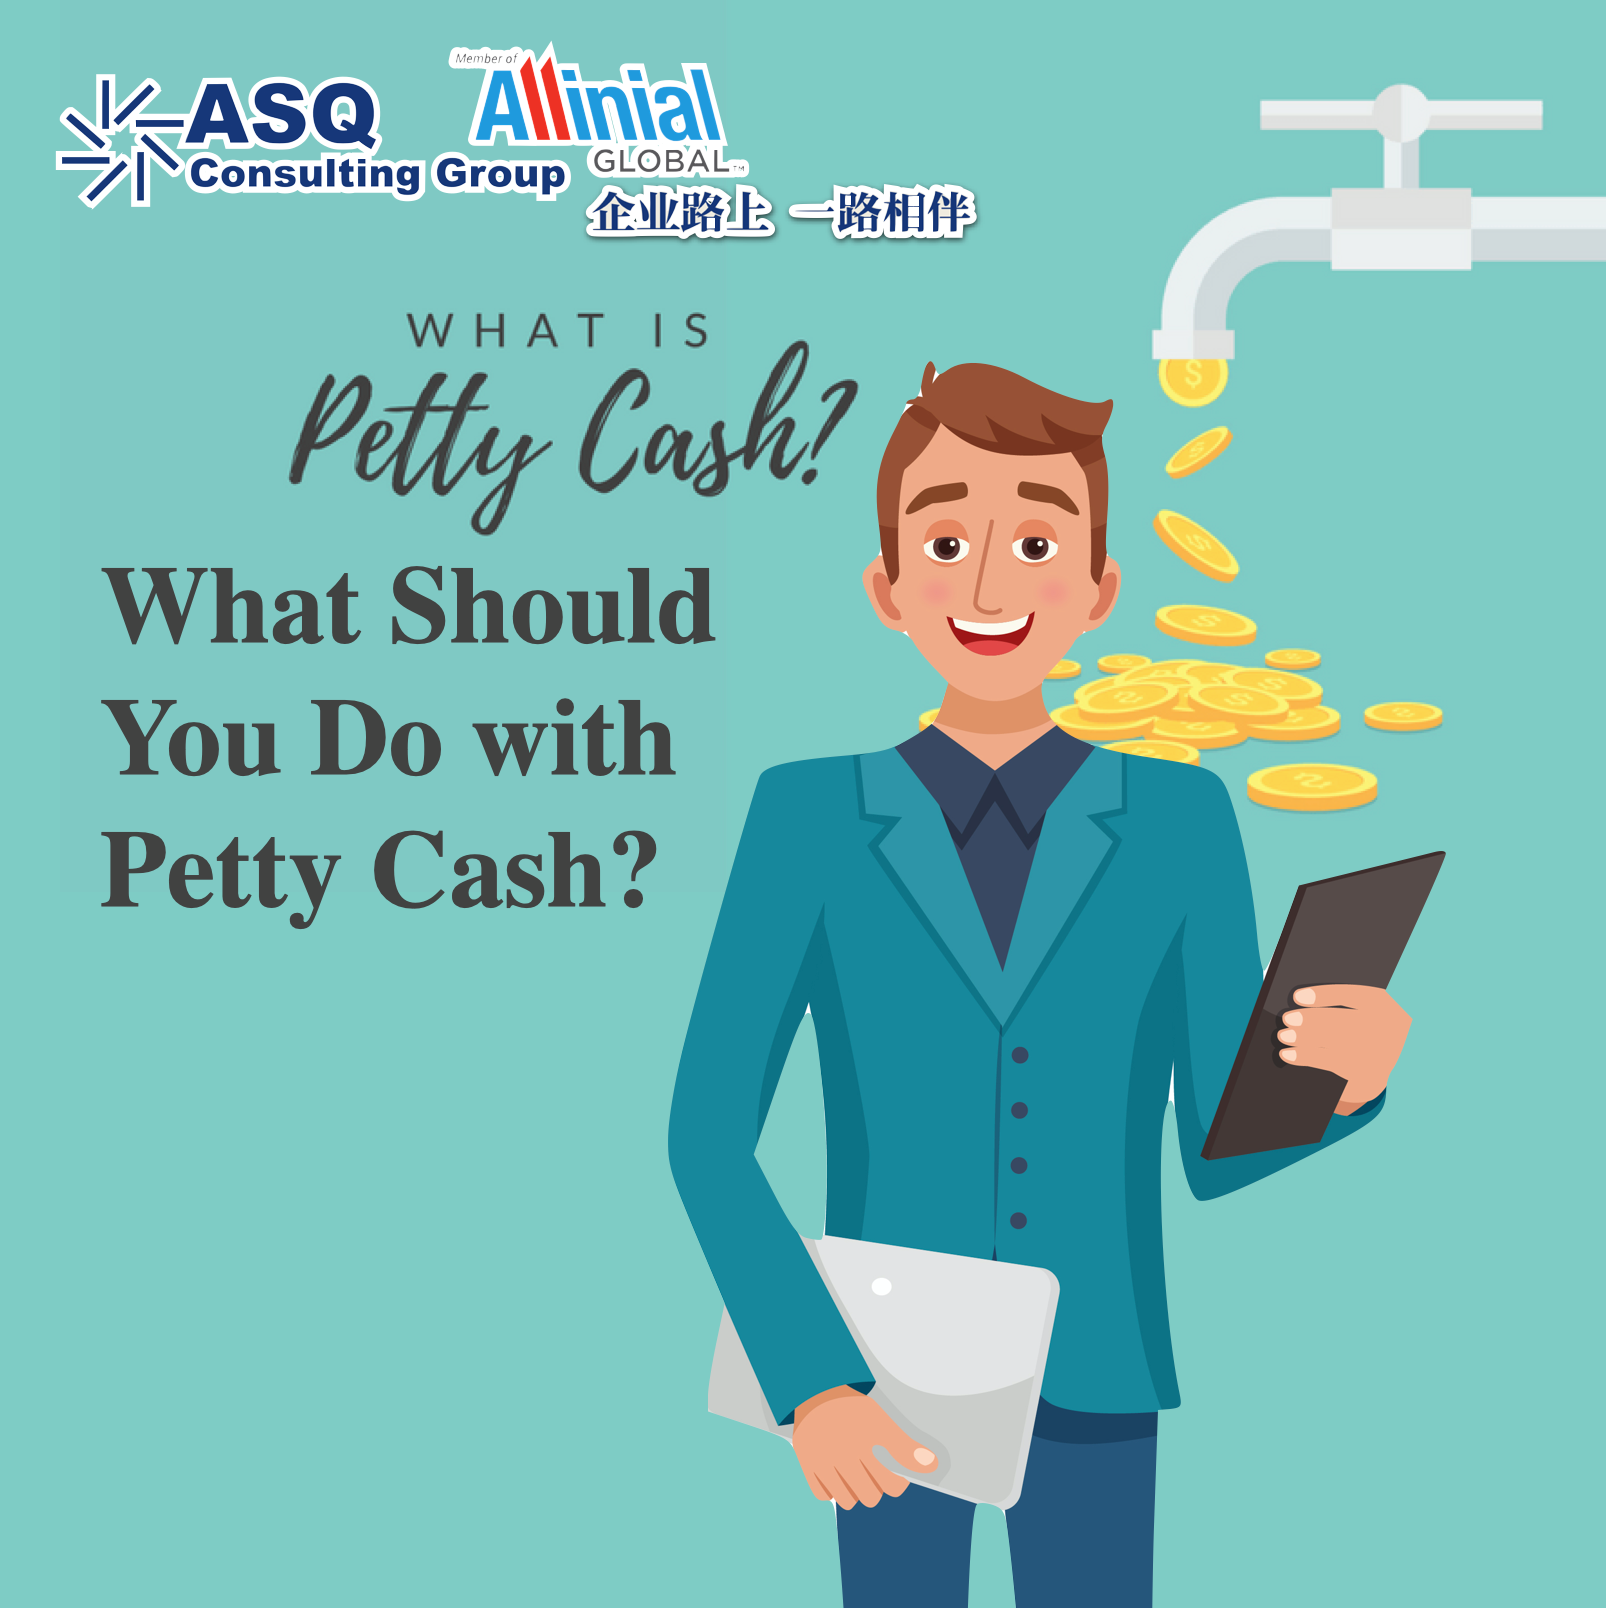 What is Petty Cash? What Should You Do with Petty Cash?